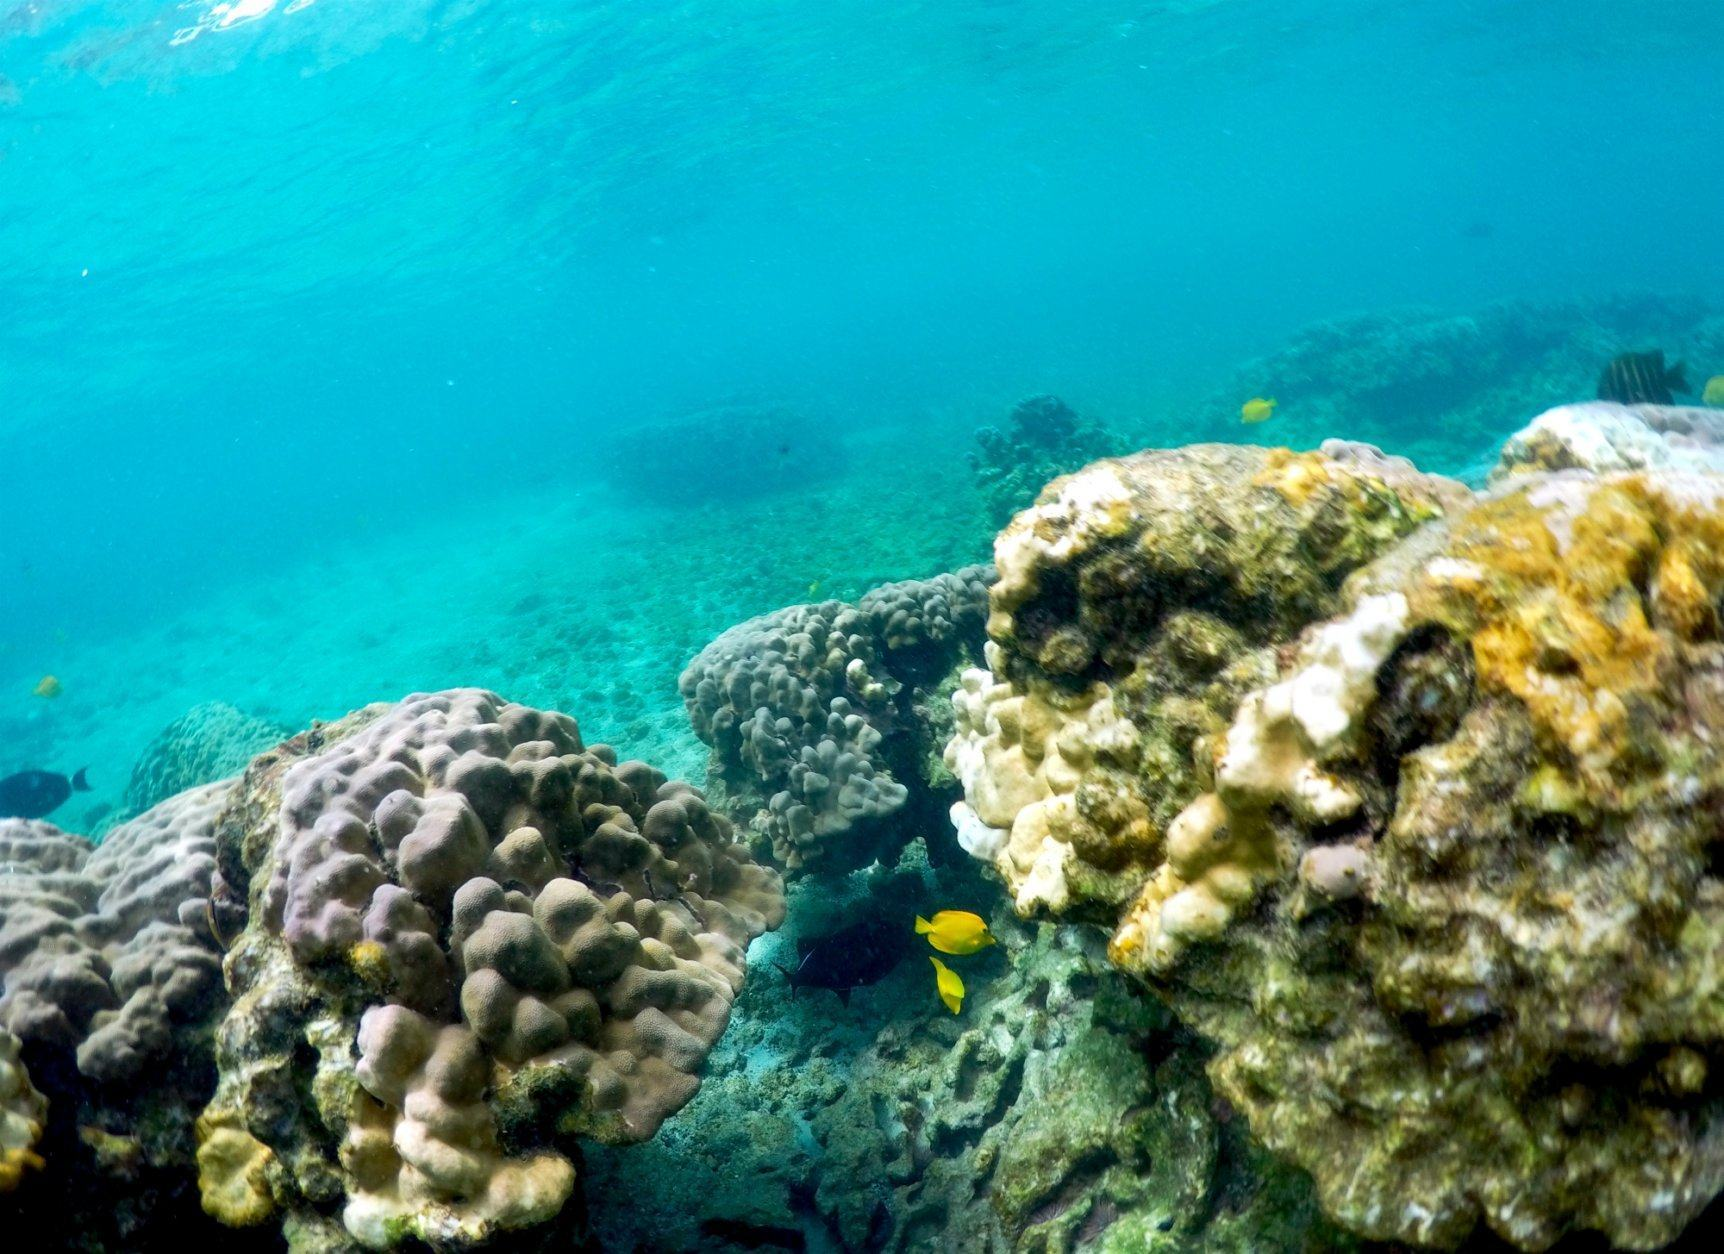 This Sept. 12, 2019 photo shows bleaching coral in Kahala'u Bay in Kailua-Kona, Hawaii. Just four years after a major marine heat wave killed nearly half of this coastline's coral, federal researchers are predicting another round of hot water will cause some of the worst coral bleaching the region has ever seen.  (AP Photo/Caleb Jones)